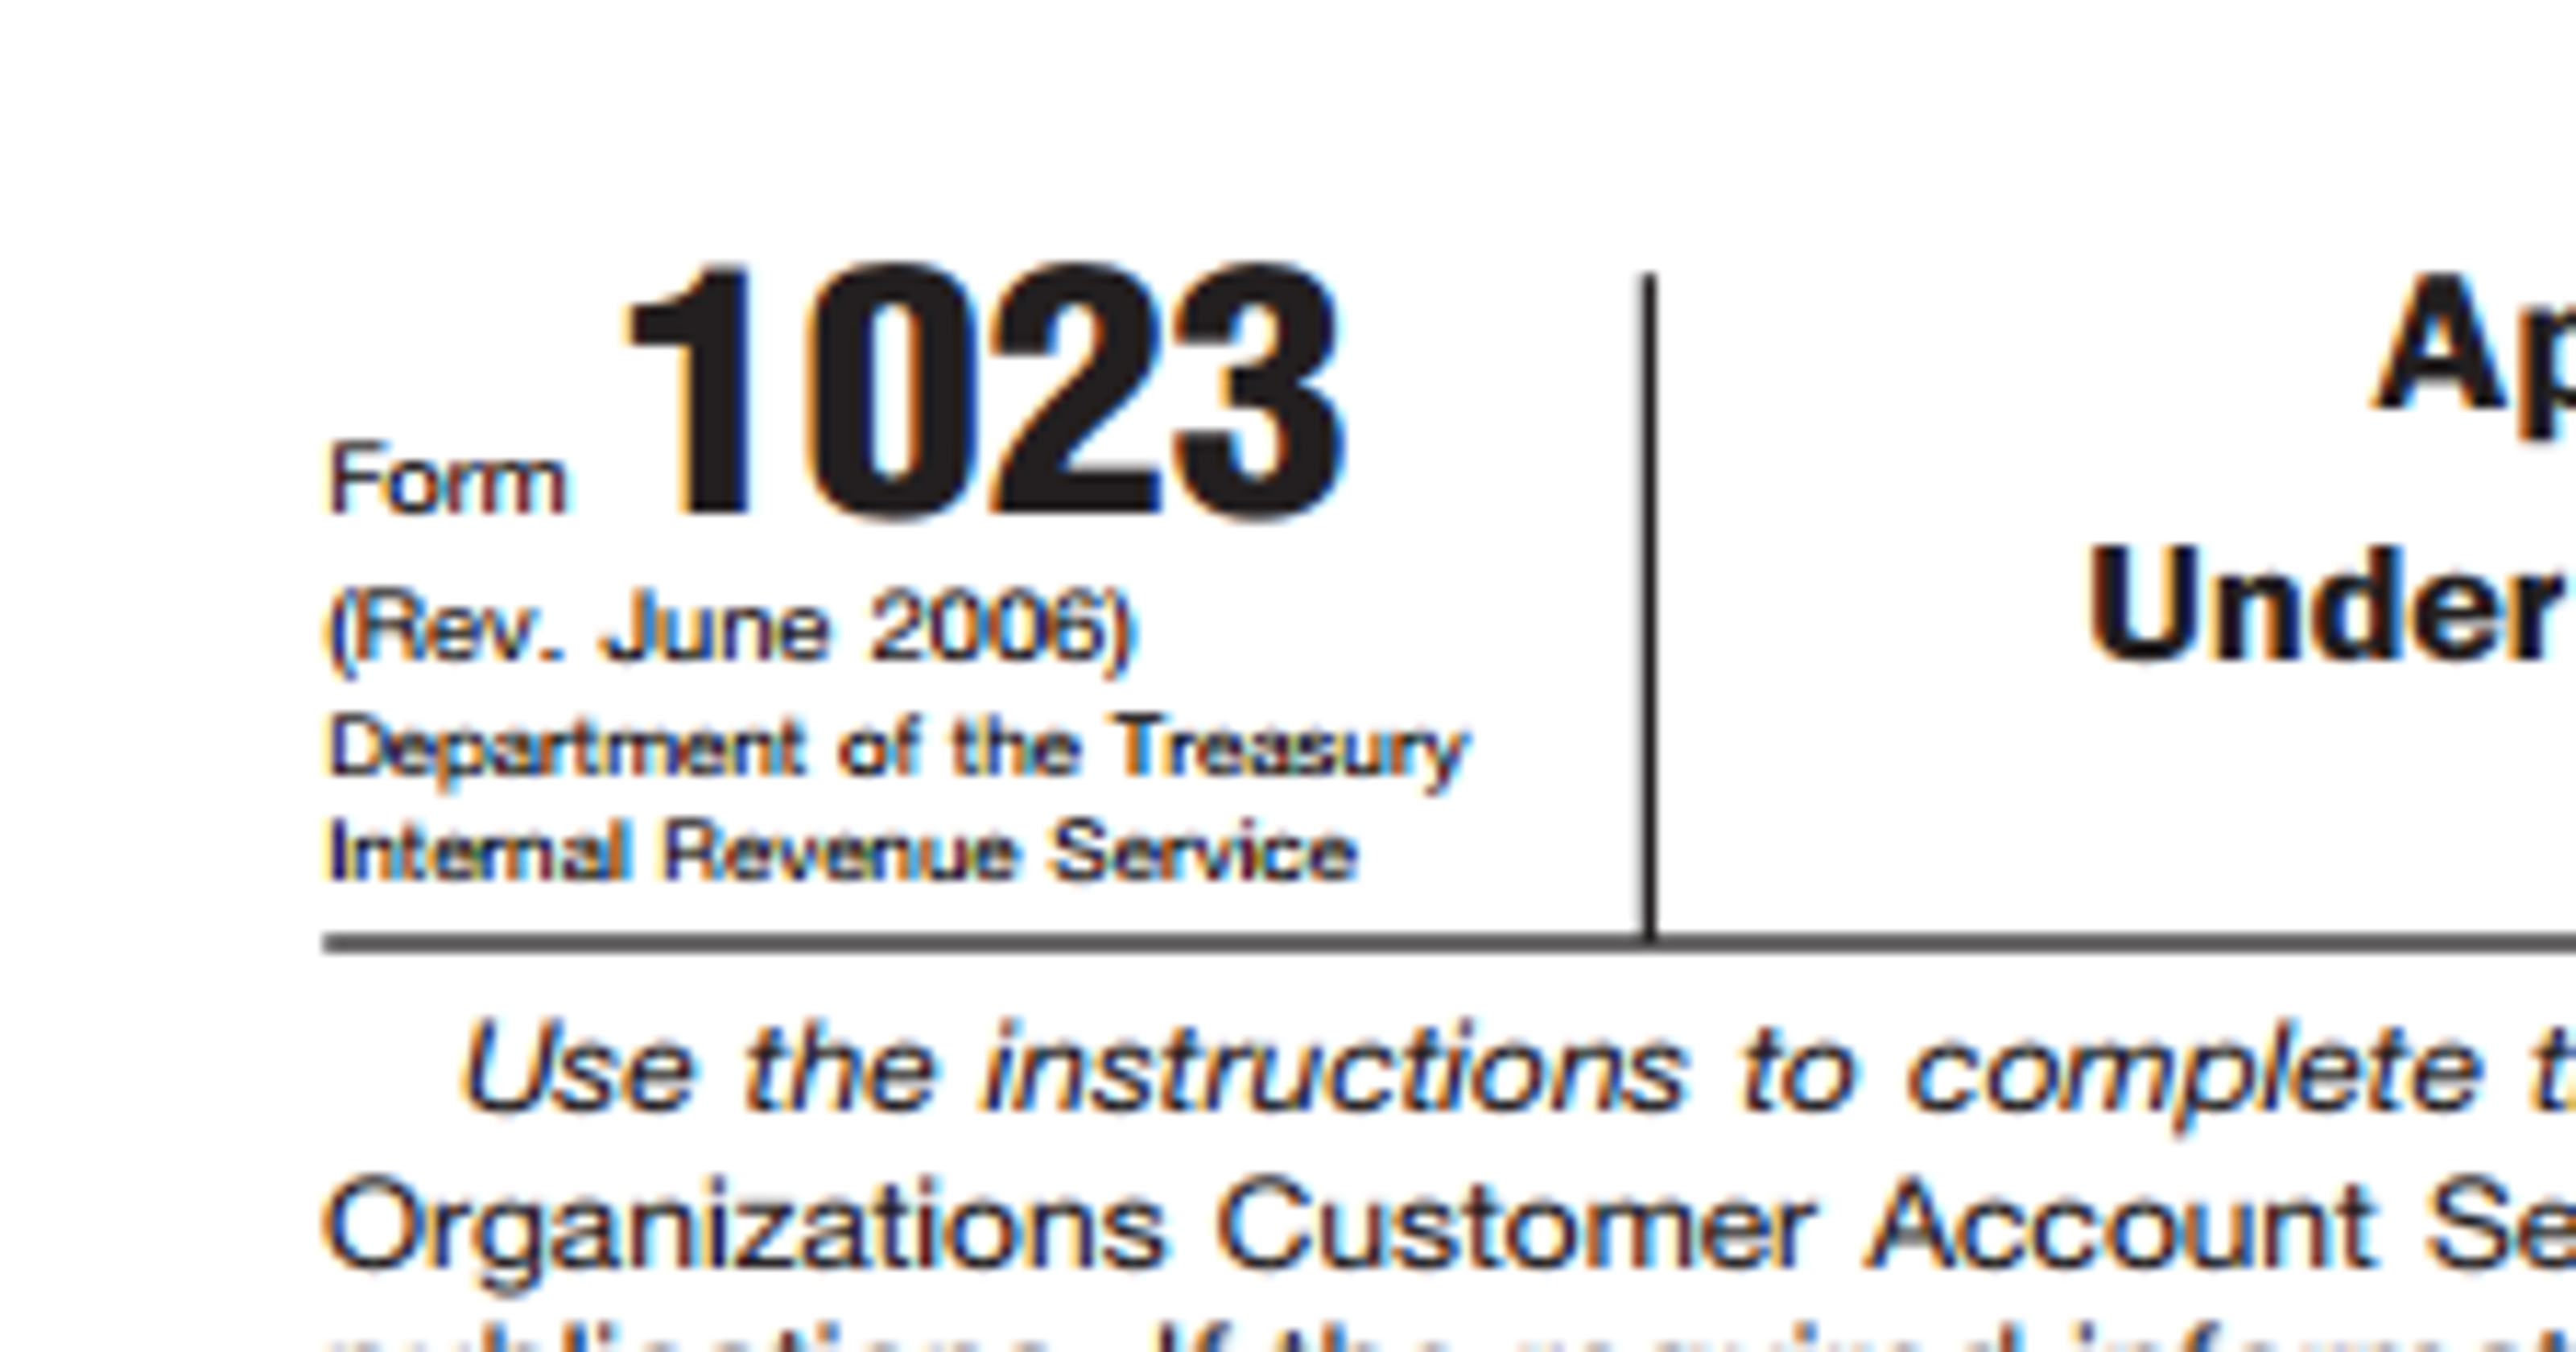 Could online form help prevent future IRS targeting?